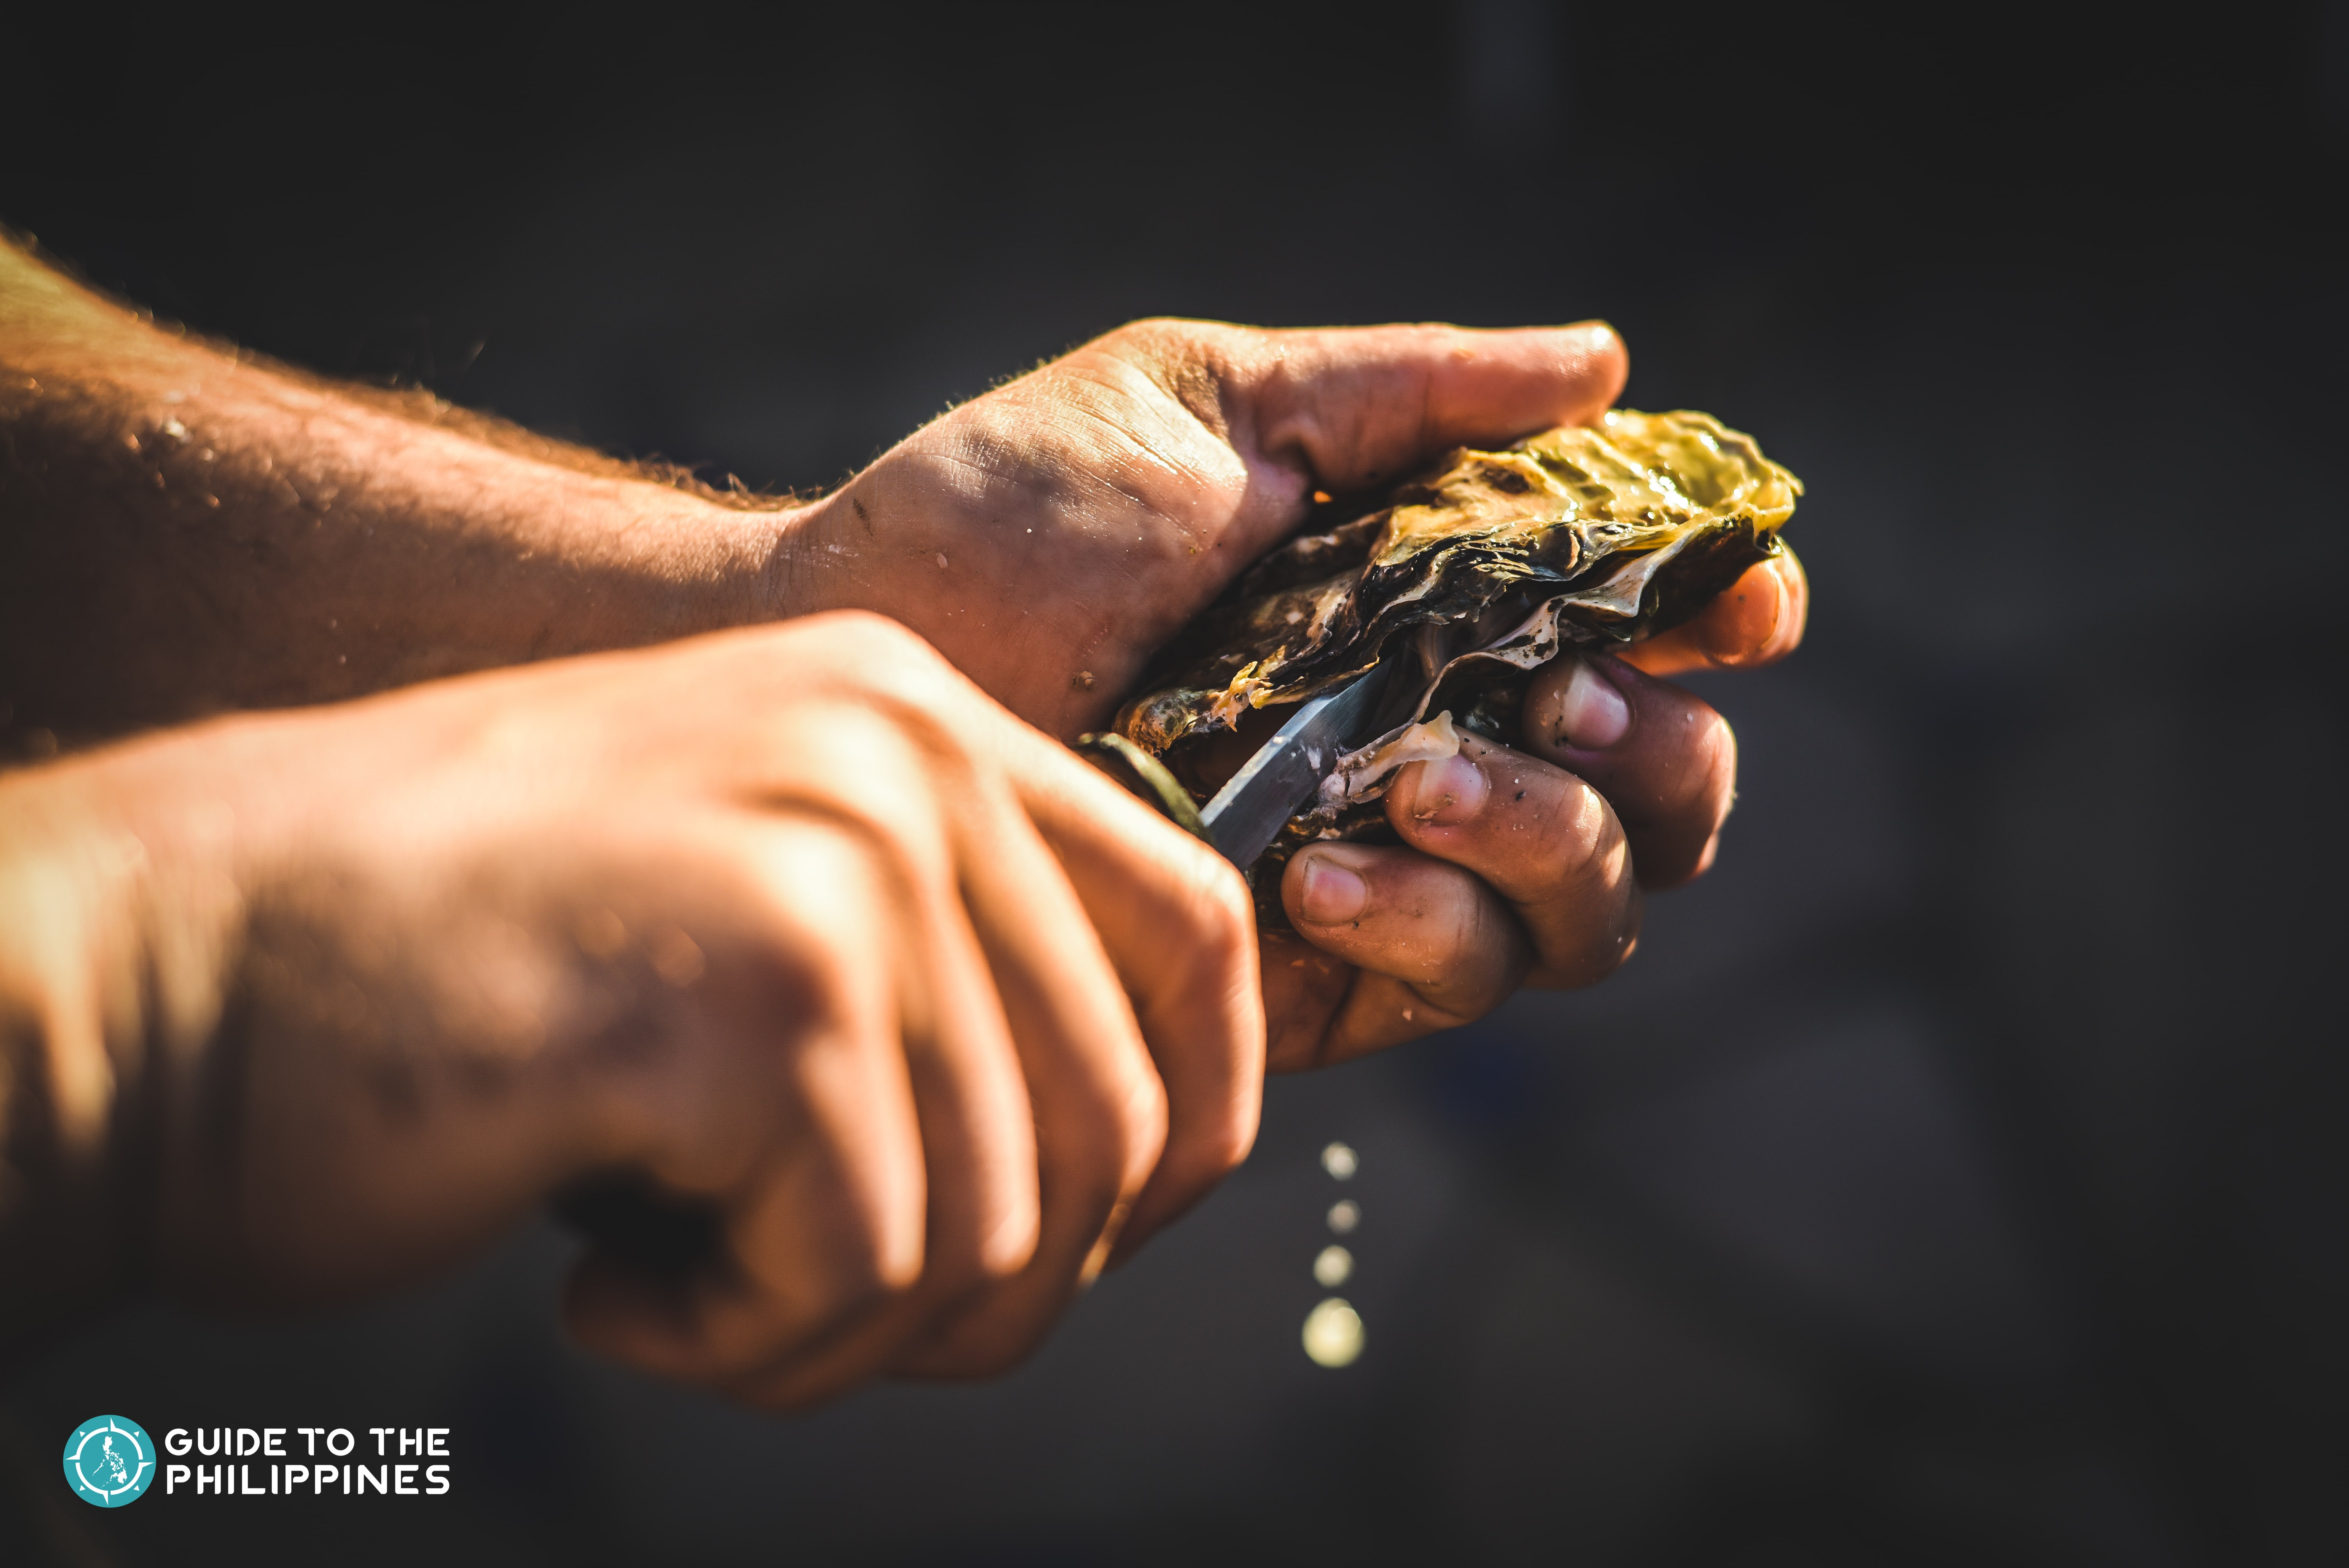 Shucking an oyster at Cambuhay Oyster Farm